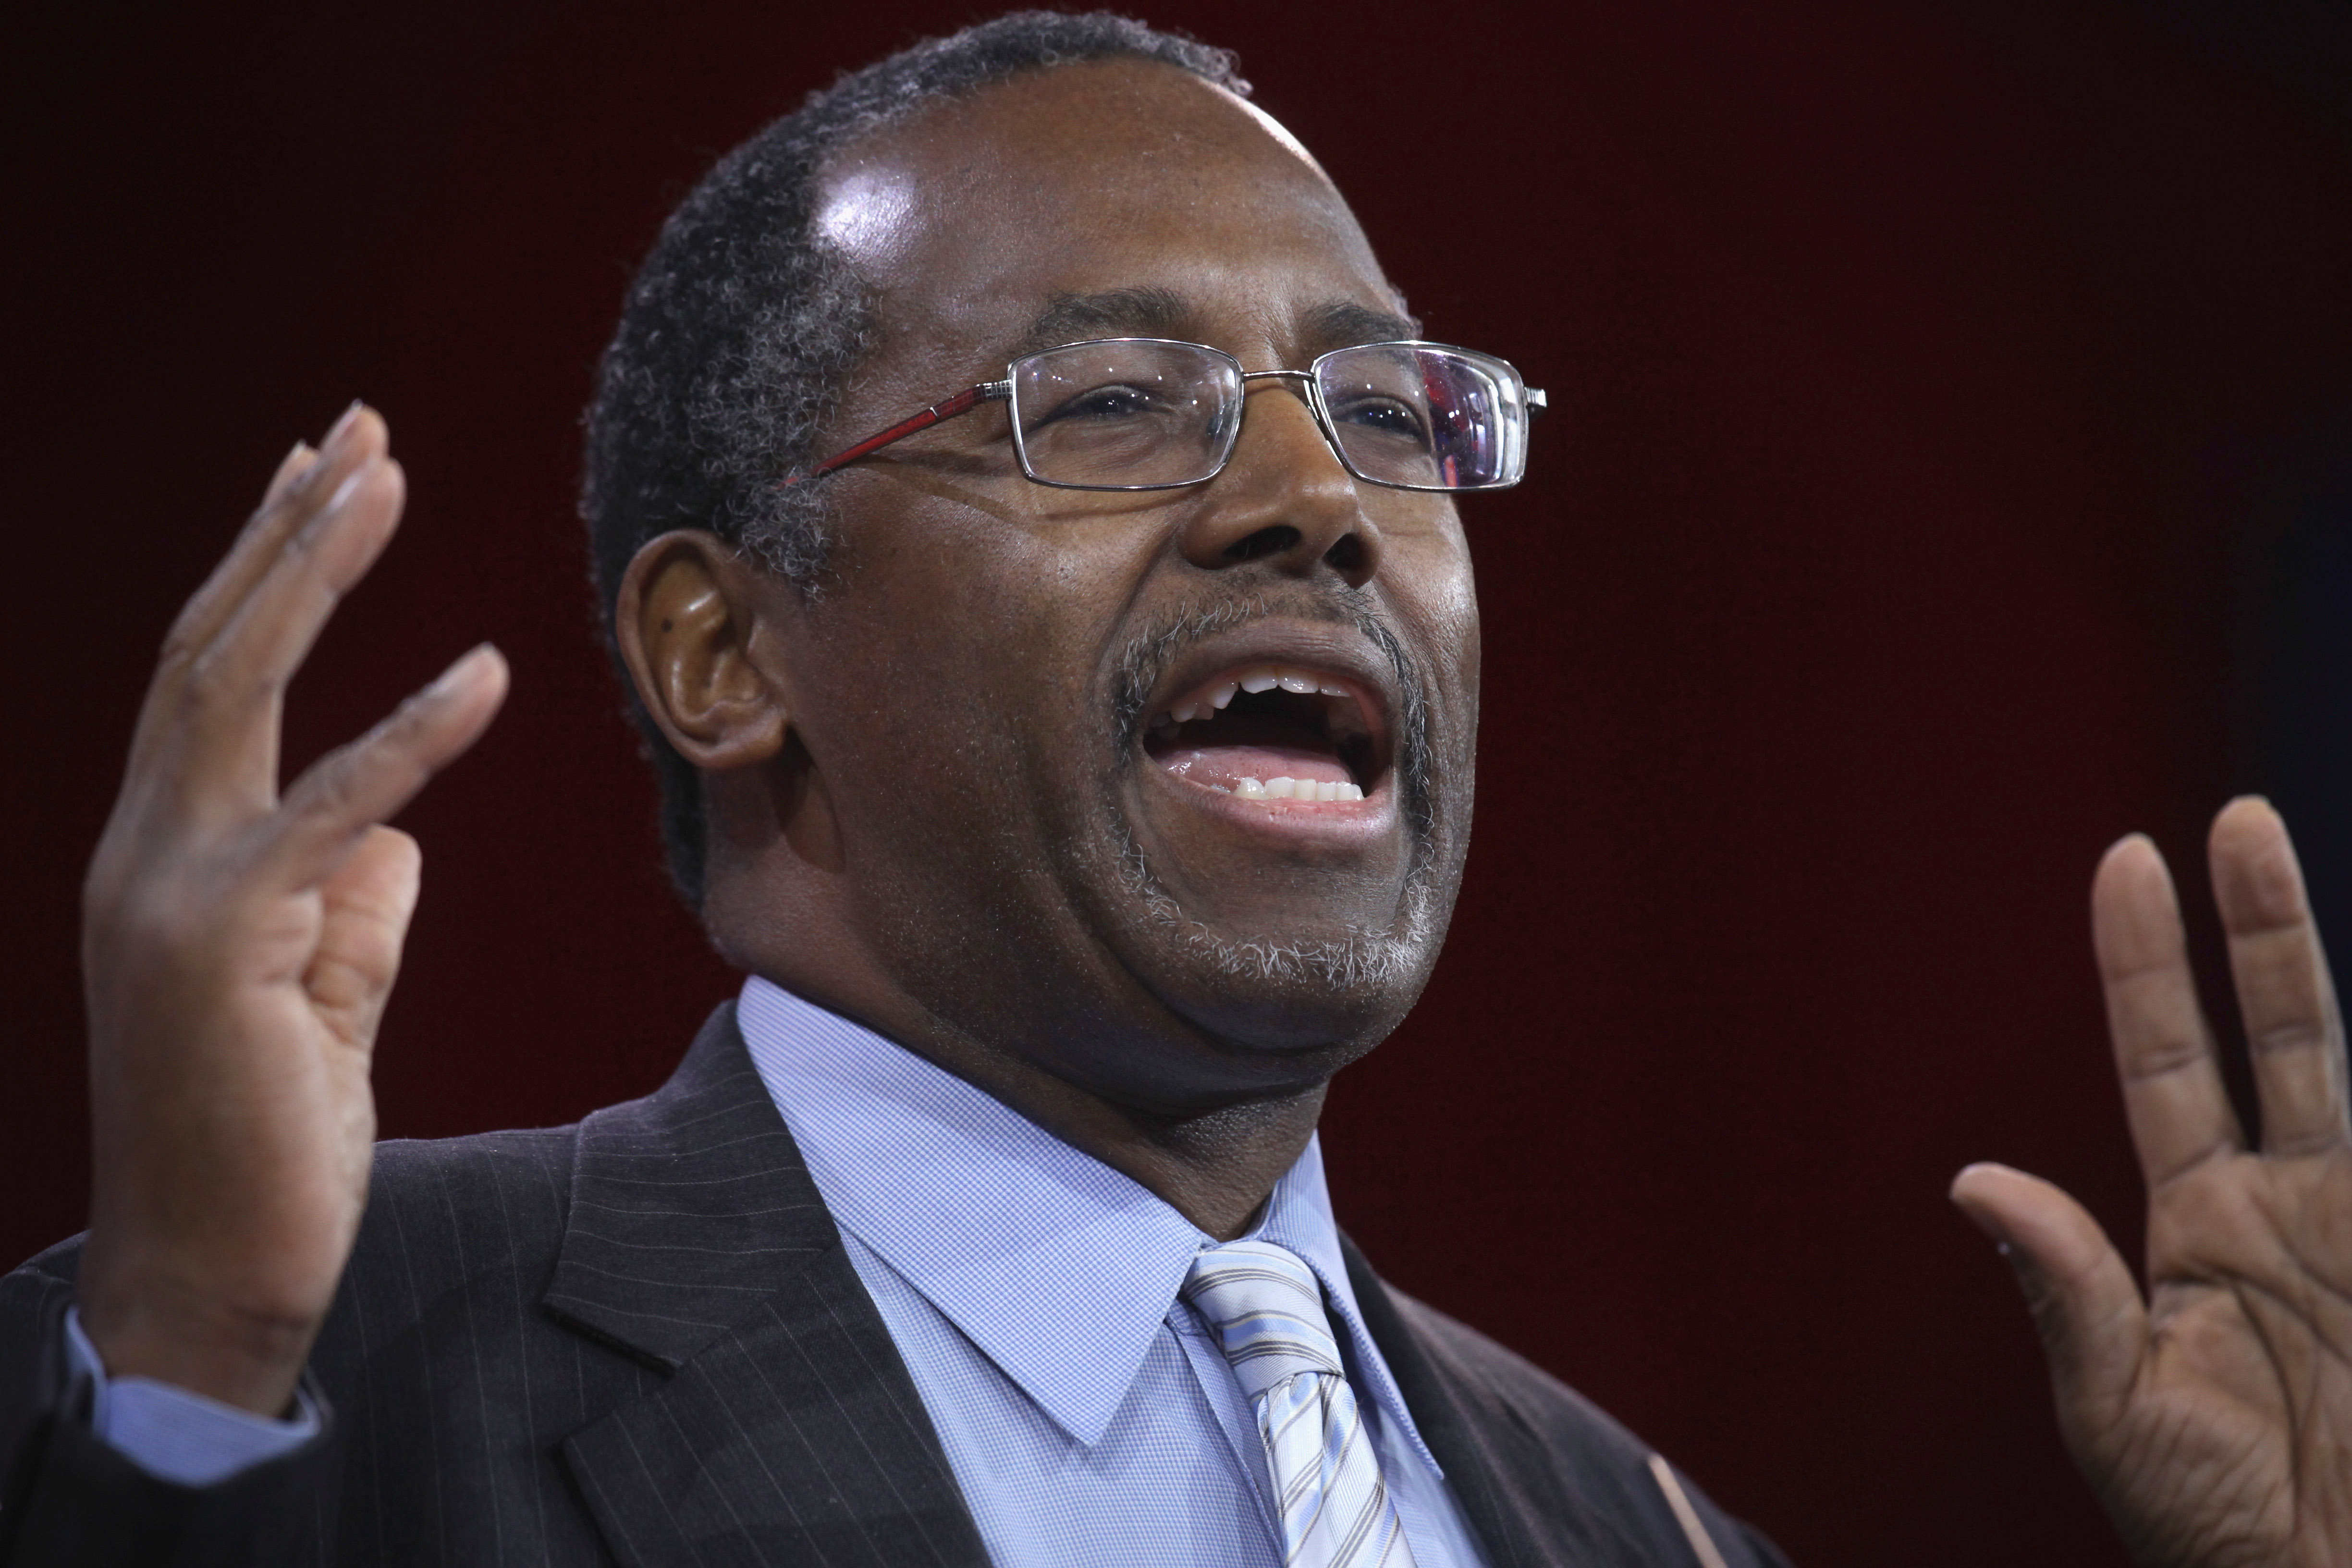 Ben Carson addresses the 42nd annual Conservative Political Action Conference on February 26, 2015 in National Harbor, Maryland.